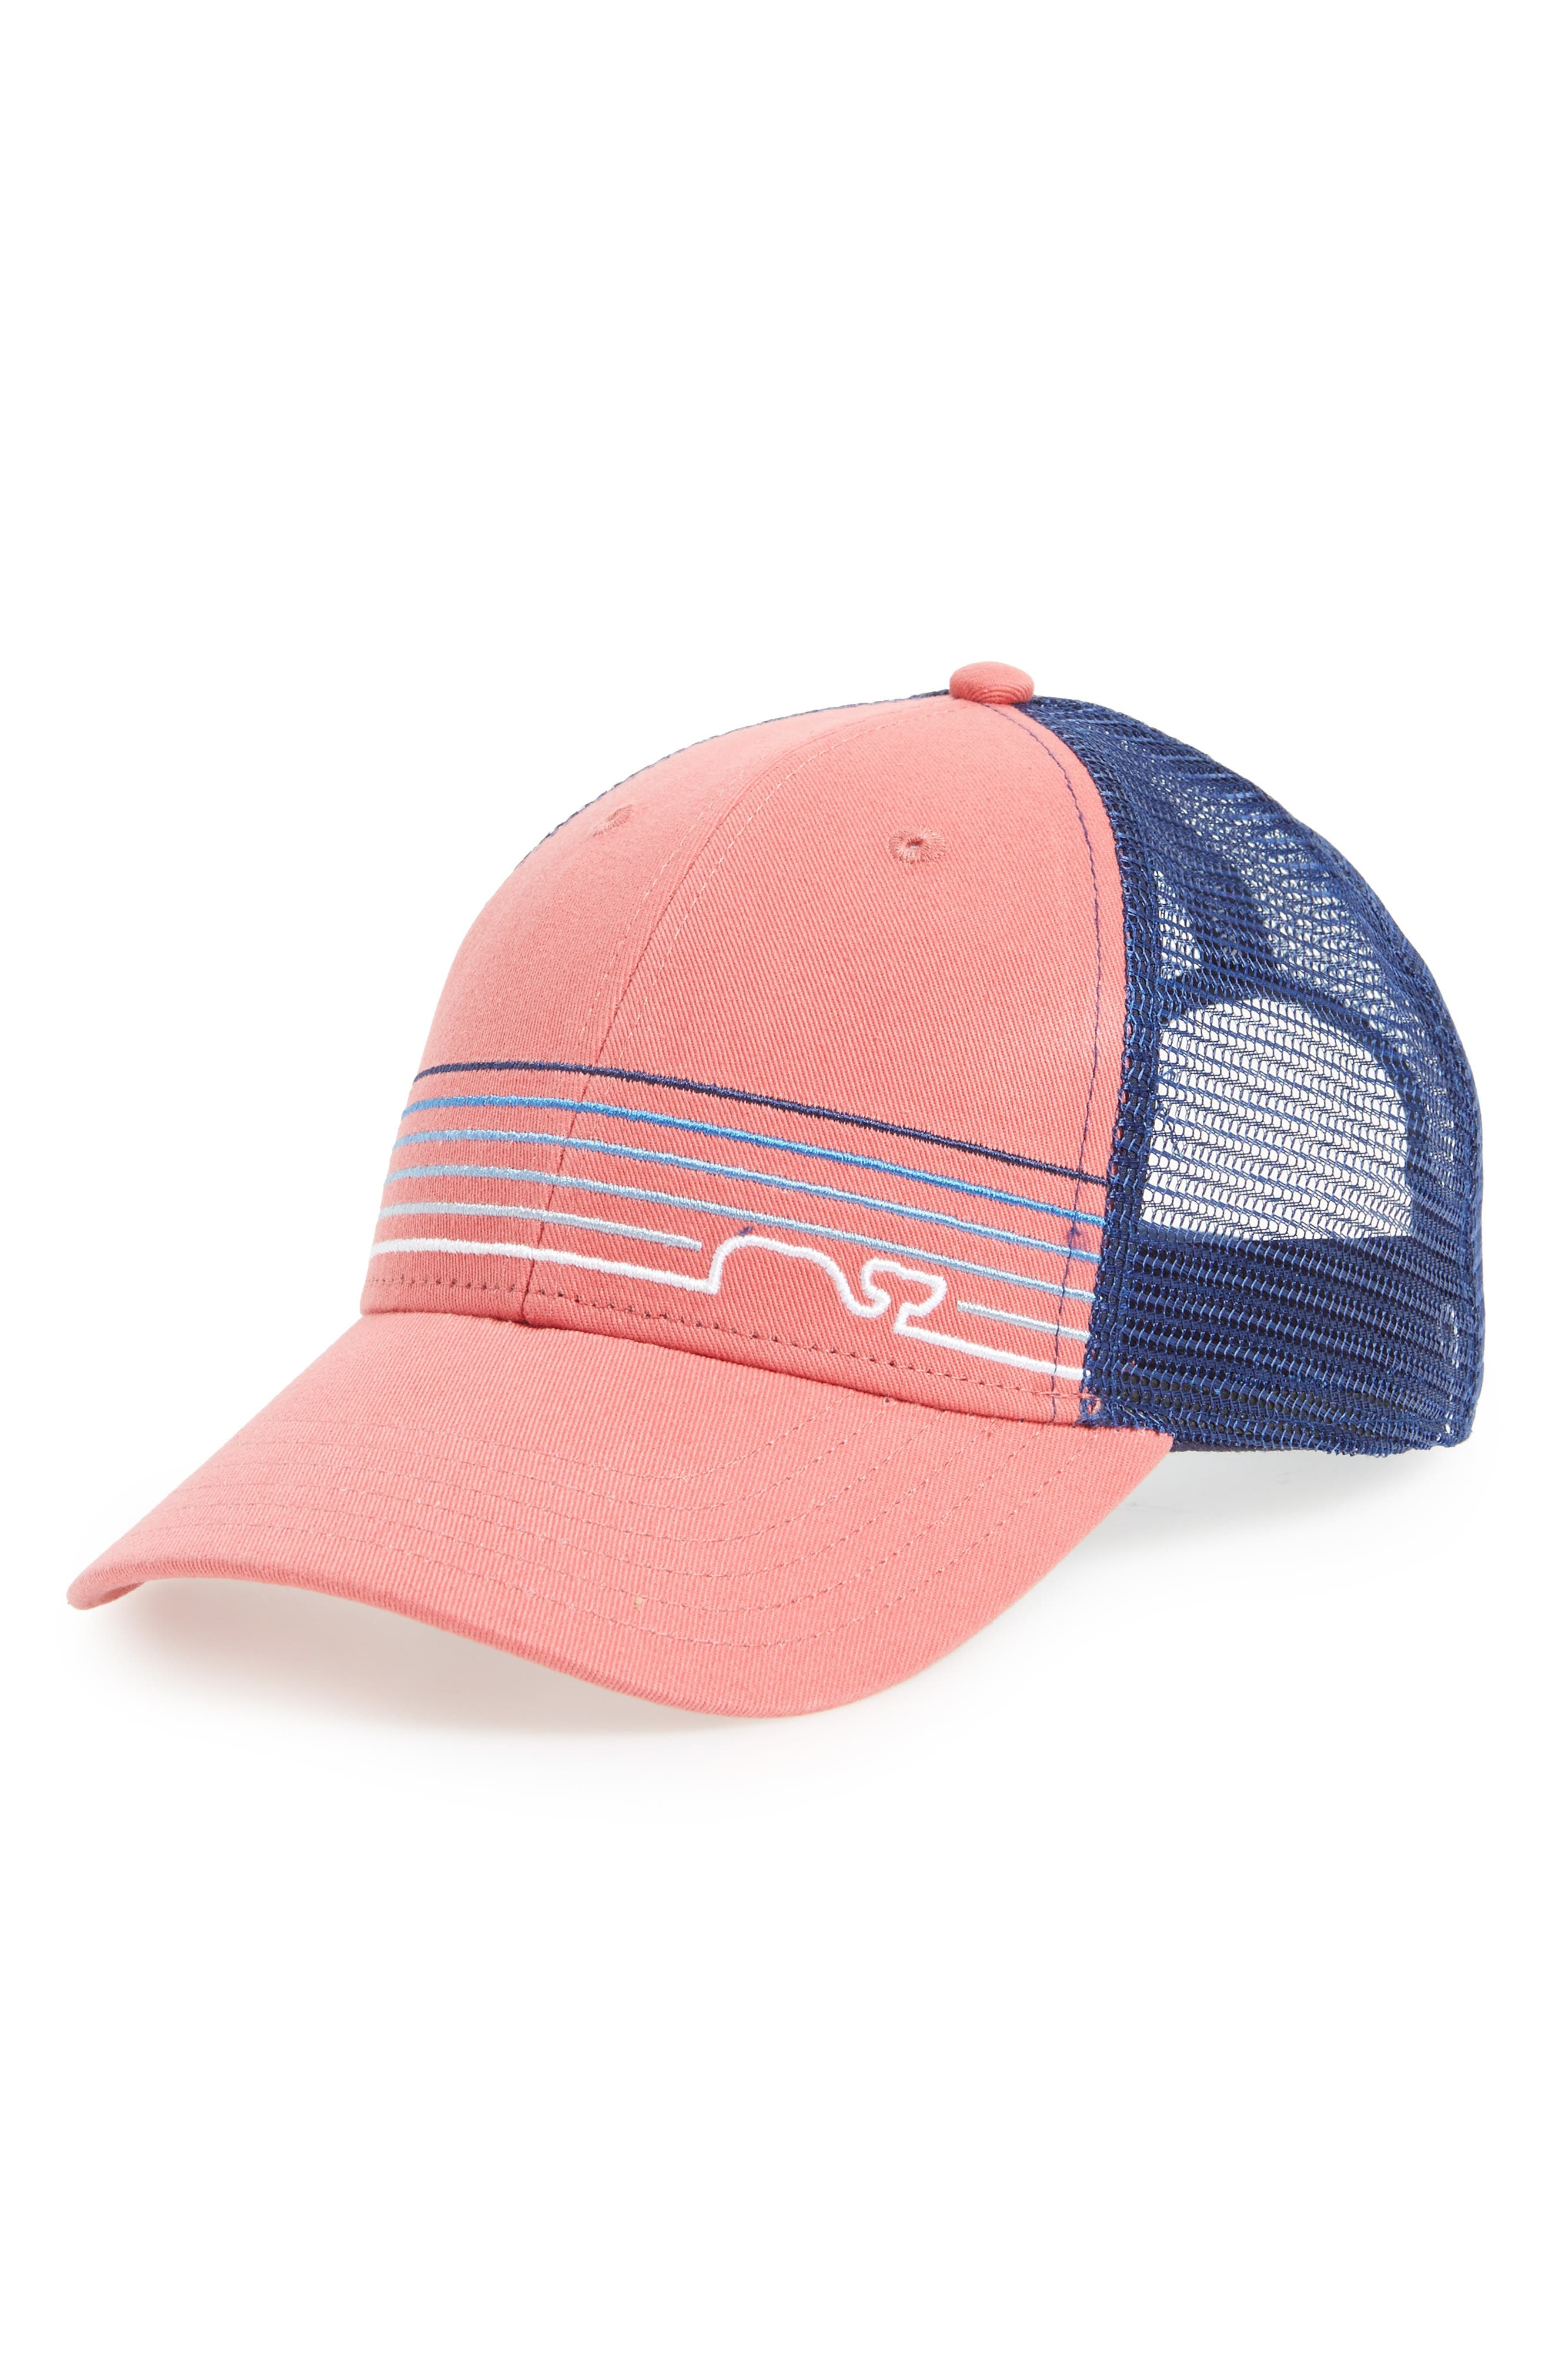 Whaleine Trucker Cap,                         Main,                         color, Jetty Red